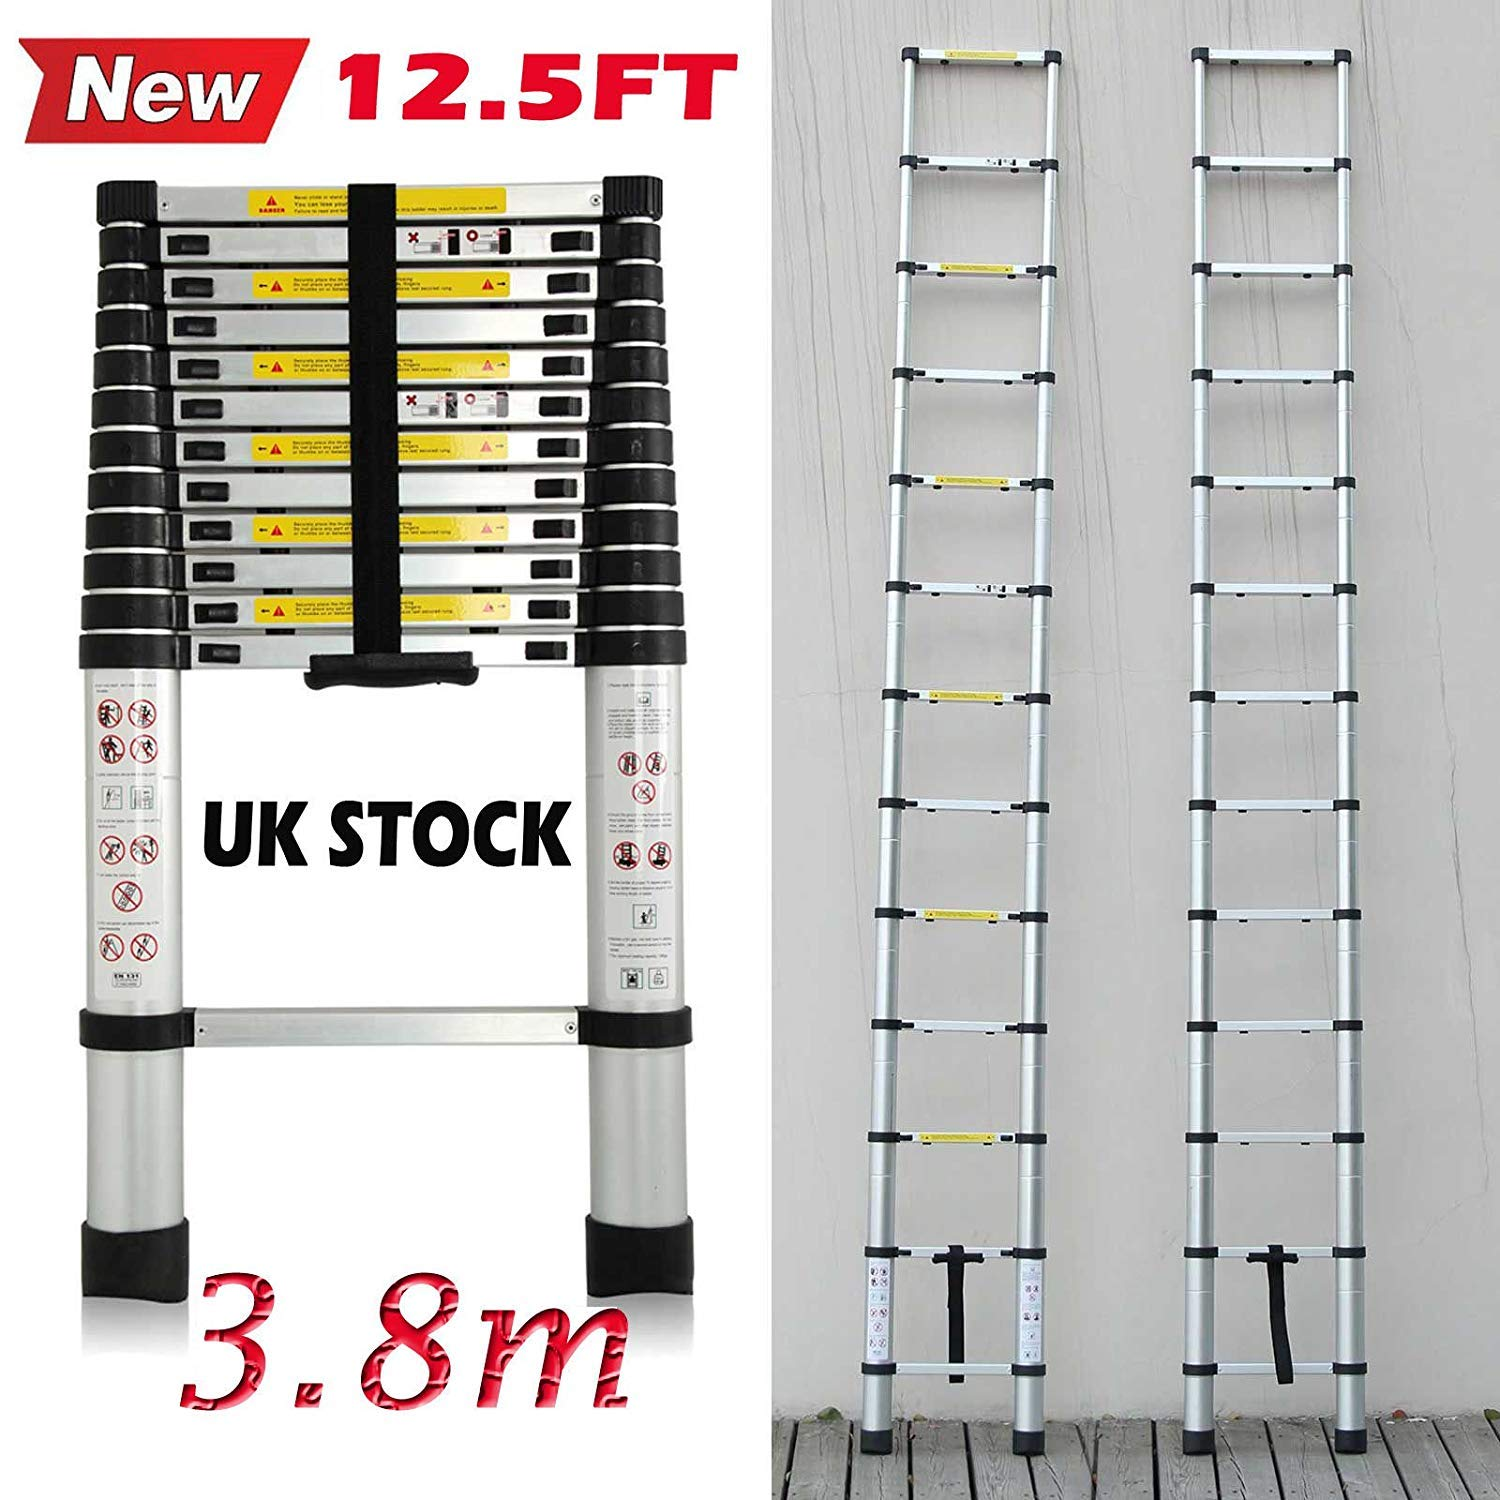 Telescopic 2.6M Aluminum DIY Extension Single Straight Muli Purpose Ladder Step Climb Light Weight Maximum Load 150KG 330lbs Compact and Sturdy, UK Stock Autofather